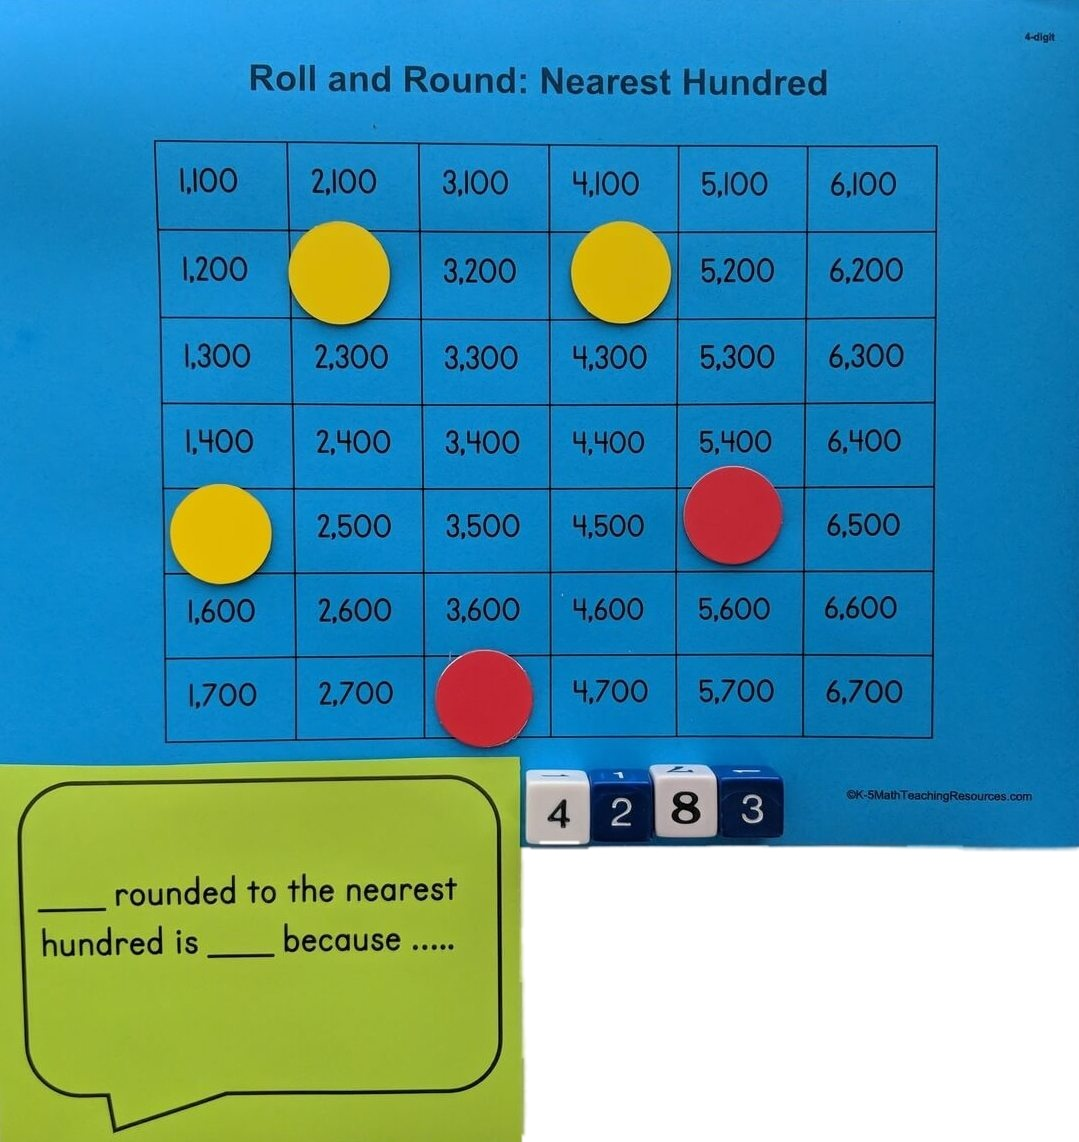 4.NBT.A.3 Roll and Round: Nearest Hundred